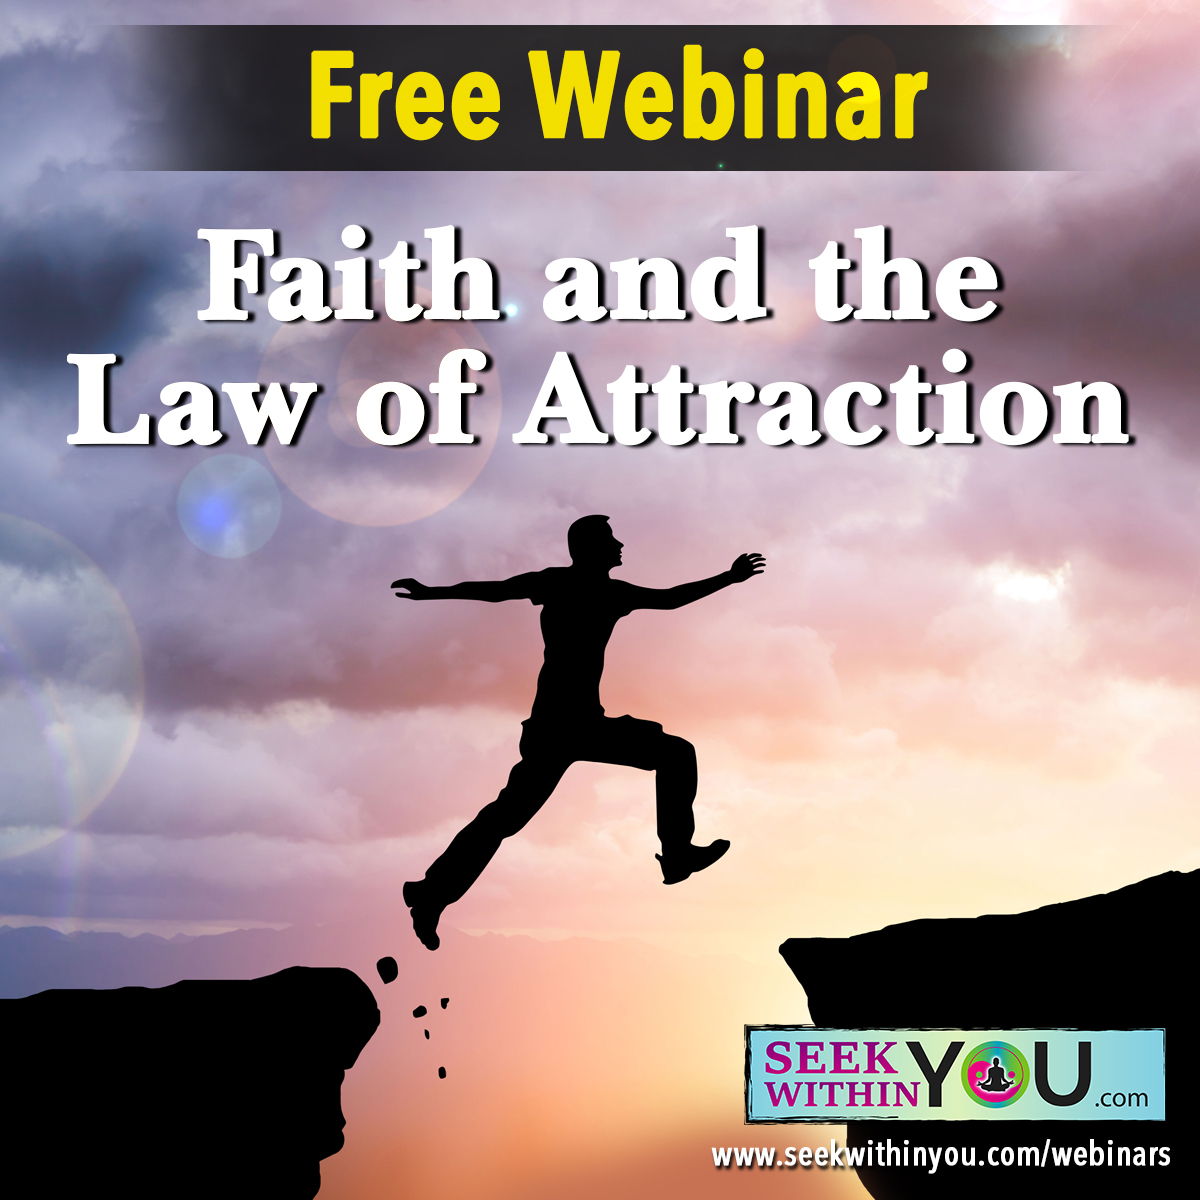 Faith and the Law of Attraction Webinar